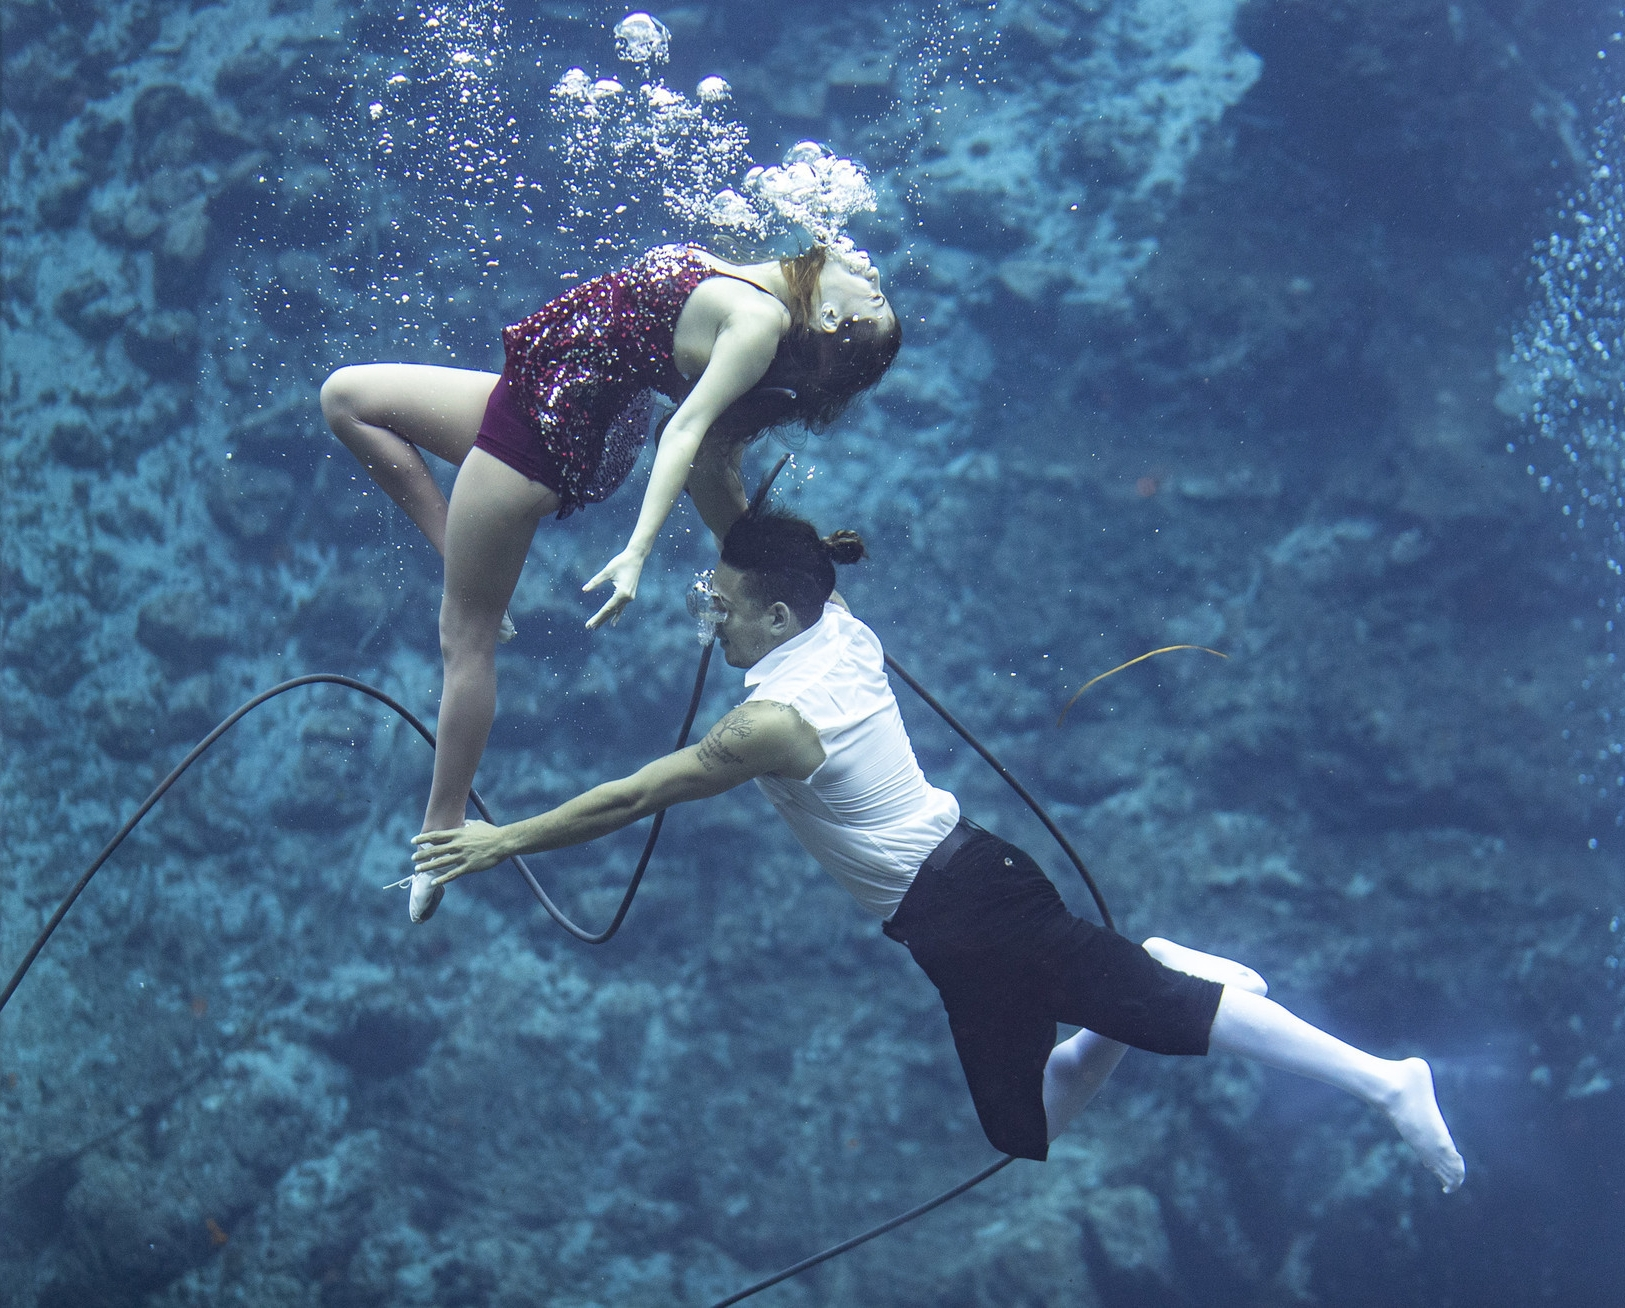 Weeki Wachee Halloween 2020 Weeki Wachee Springs: Mermaids captivate audiences in newly